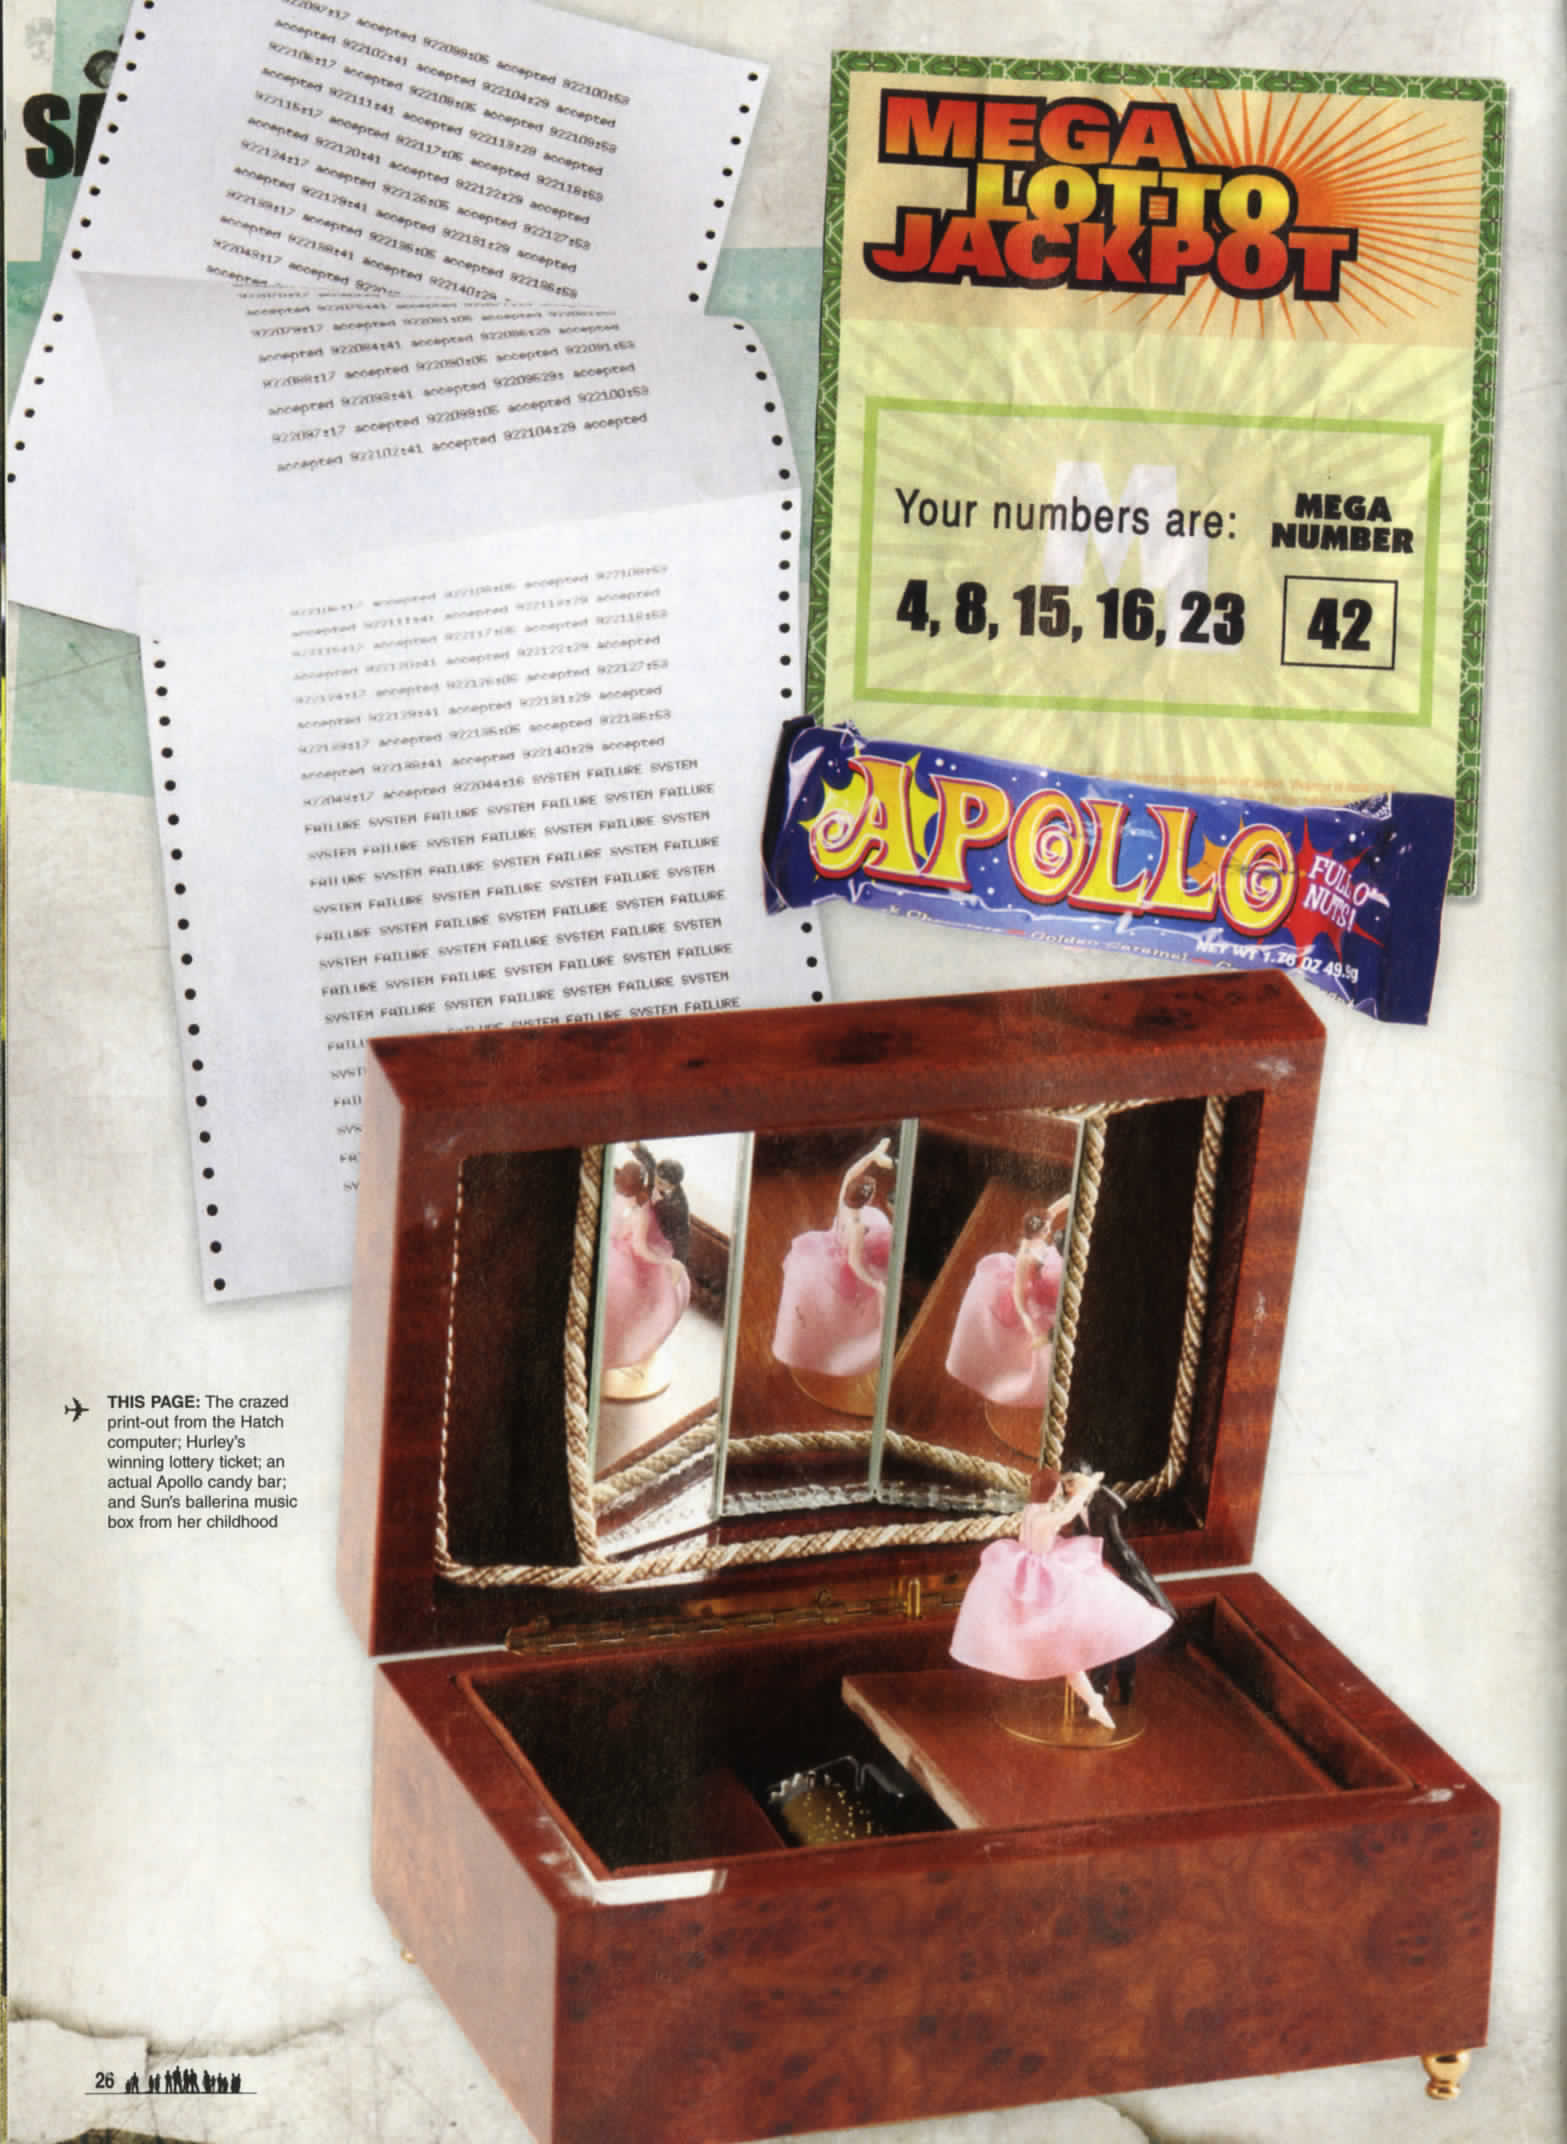 lost the official magazine snip it with a small brown music box with a small ballerina in a pink tutu reflected in a mirror